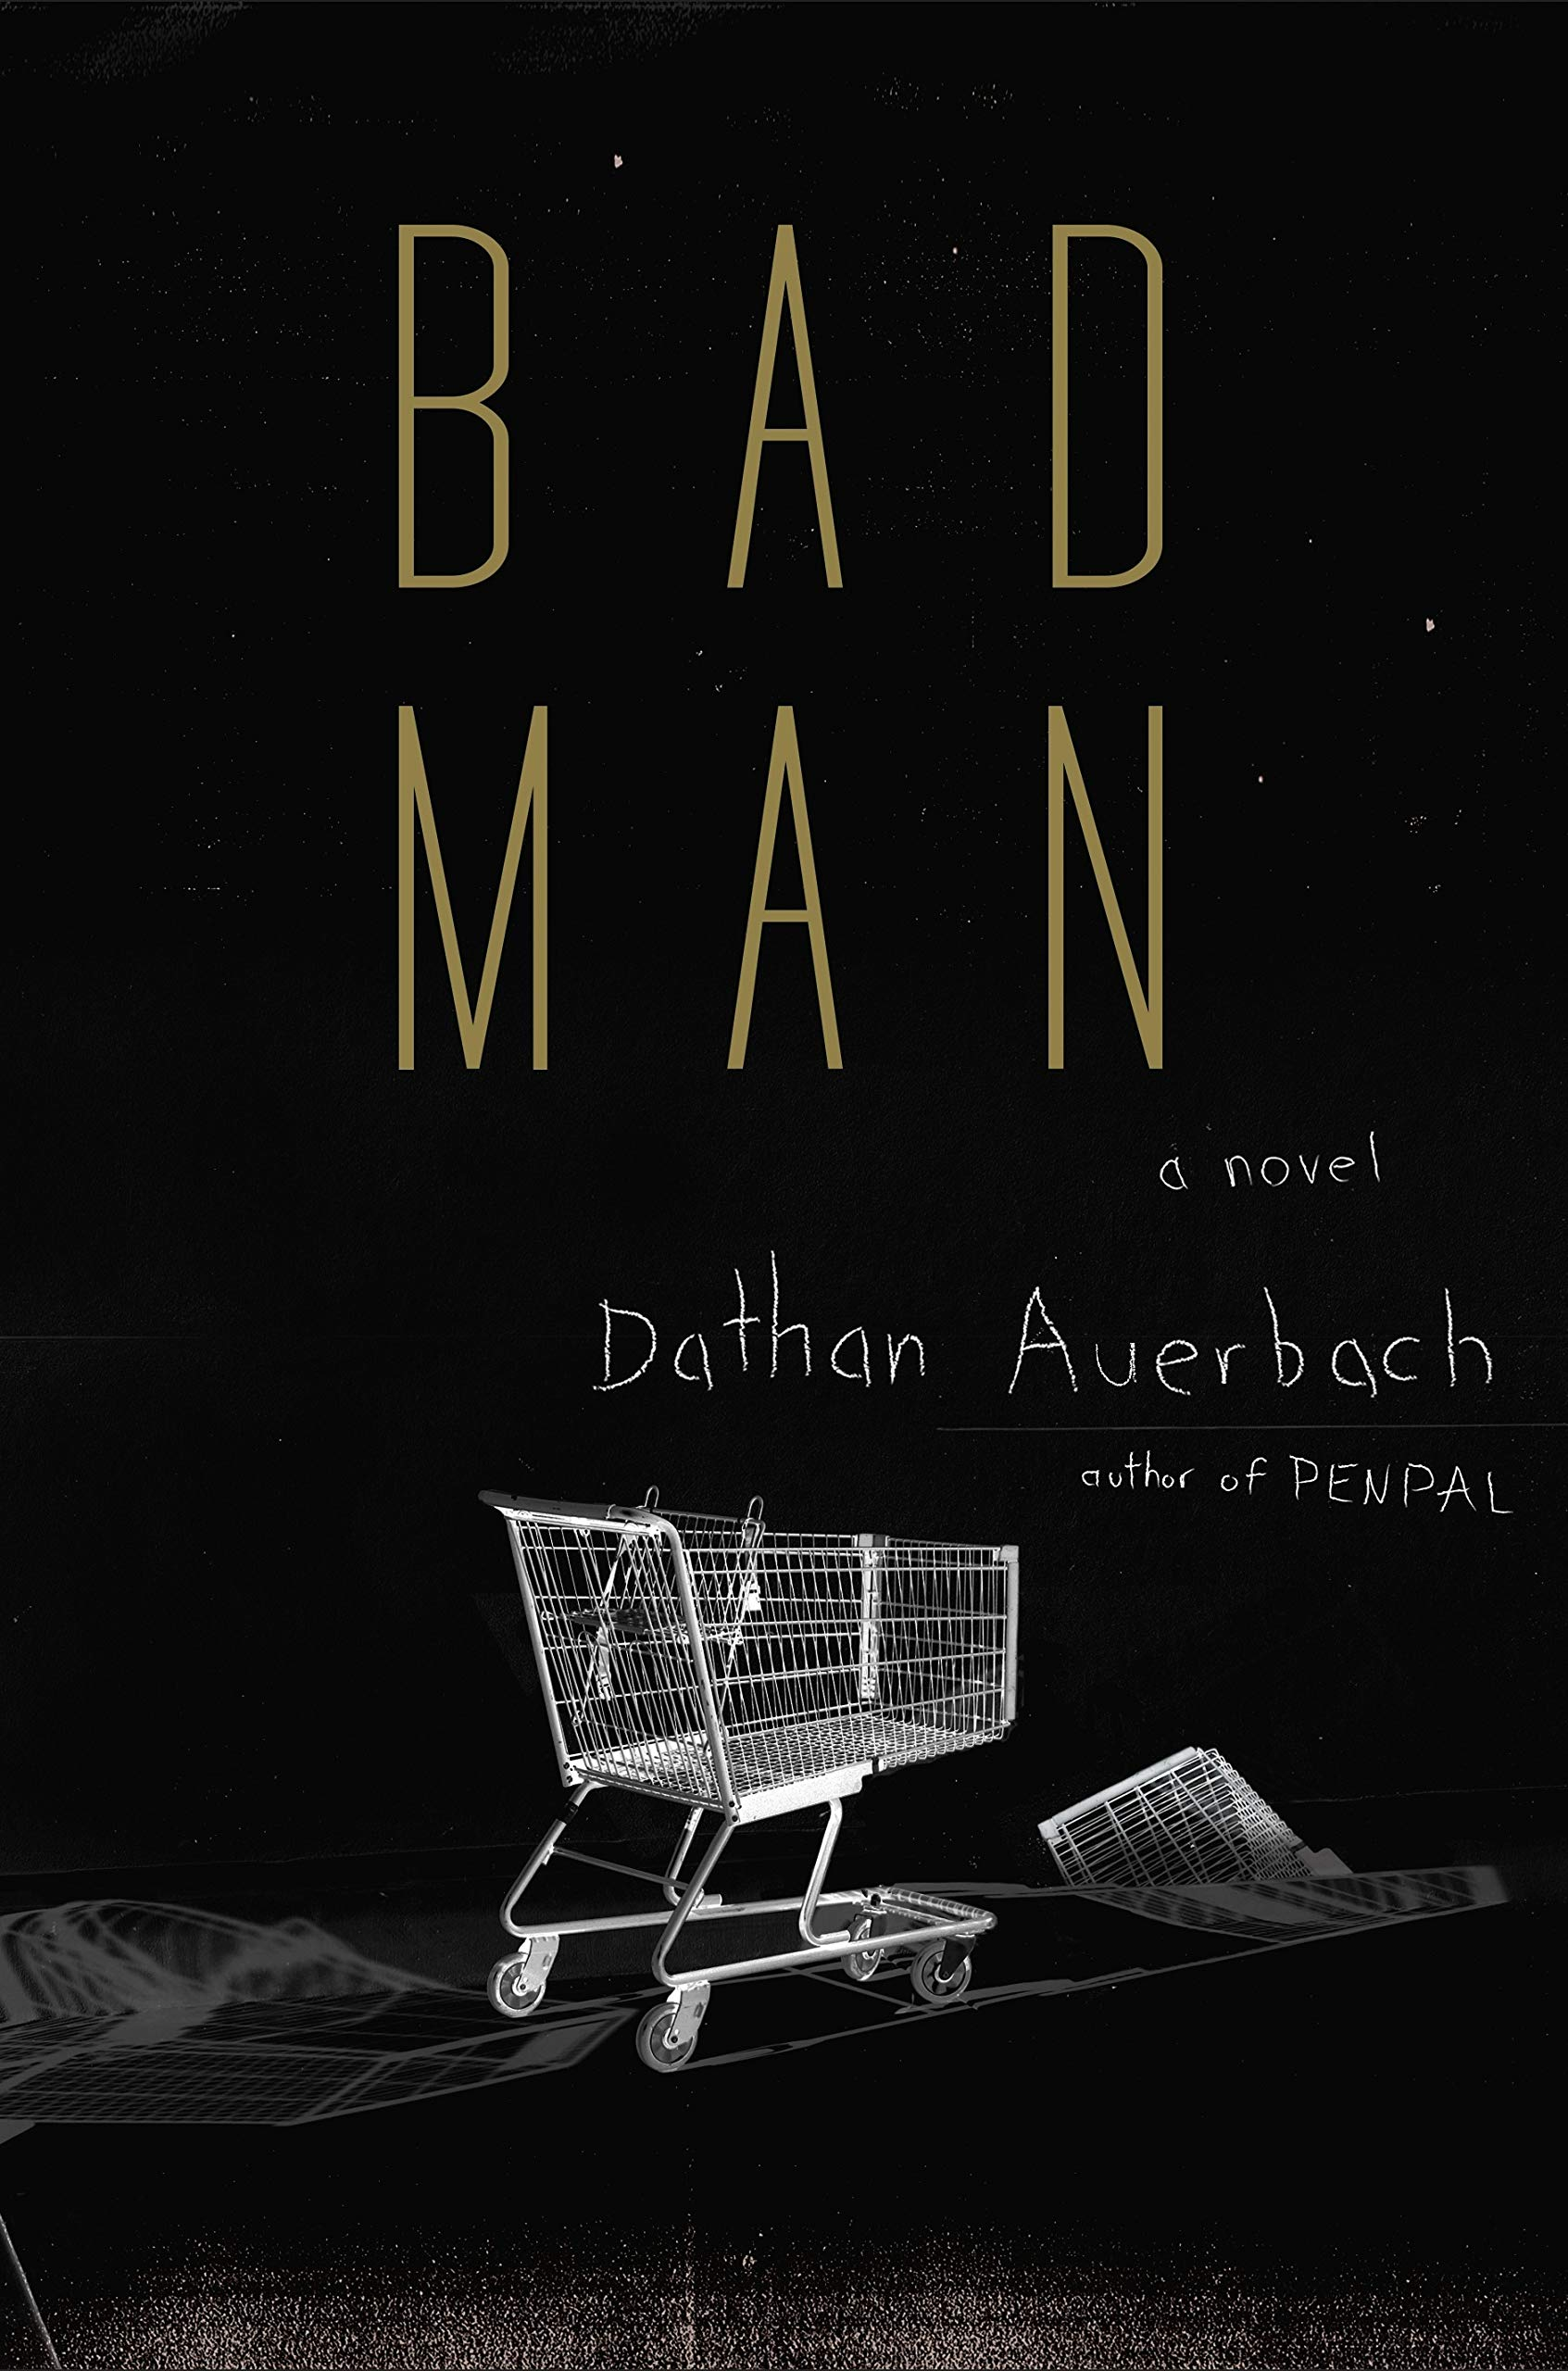 Amazon com: Bad Man: A Novel (9780385542920): Dathan Auerbach: Books